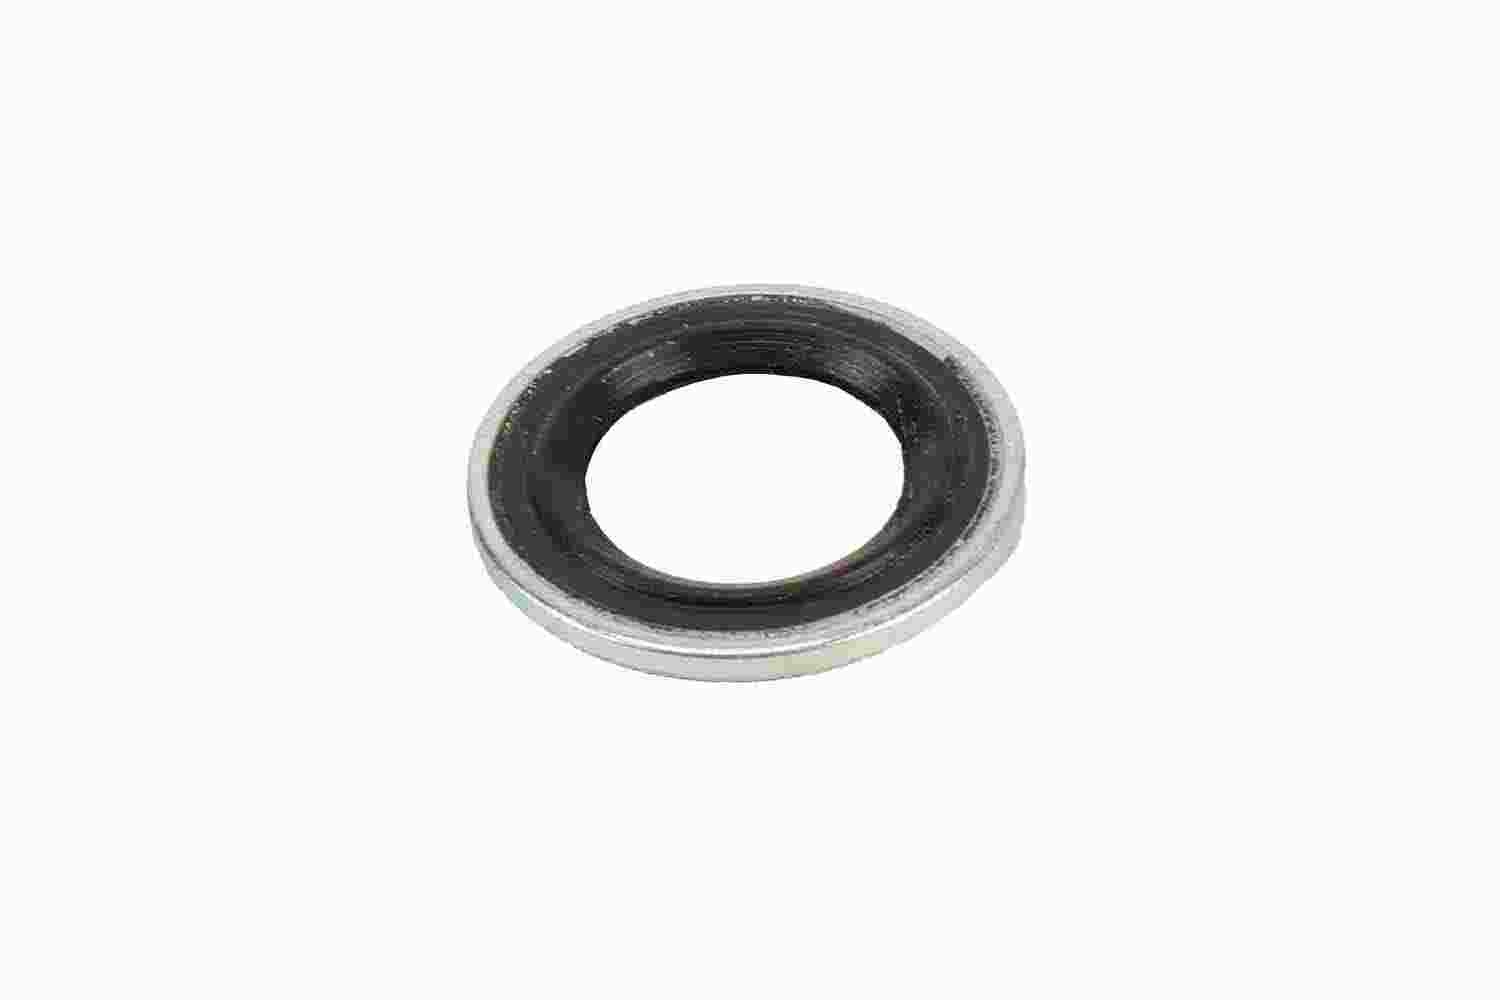 ACDELCO GM ORIGINAL EQUIPMENT - Automatic Transmission Oil Cooler Tube O-Ring - DCB 15-31055